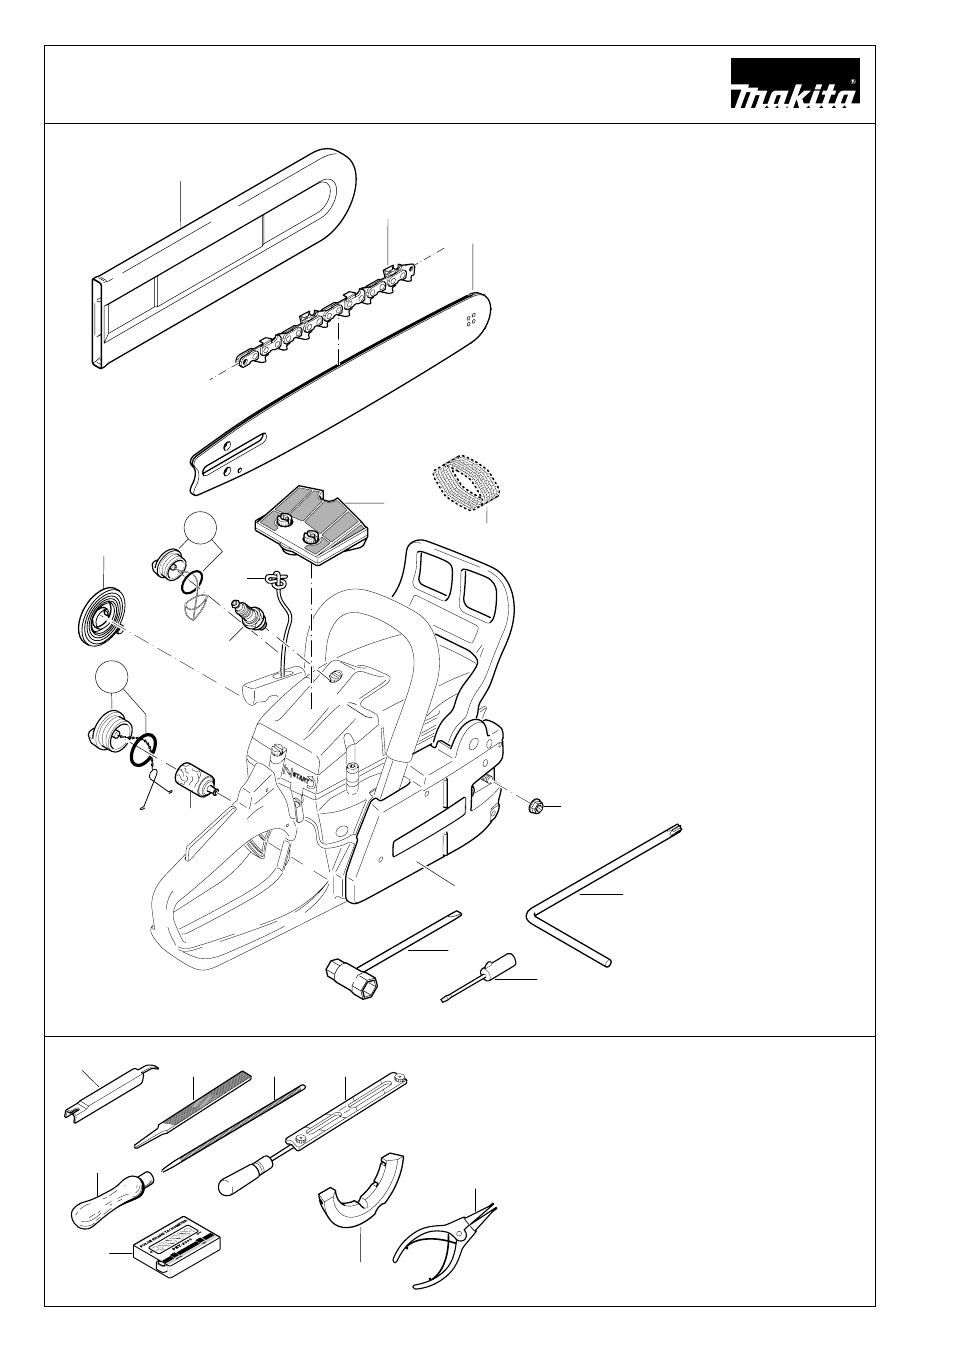 Extract from the spare parts list | Makita DCS 6800I User